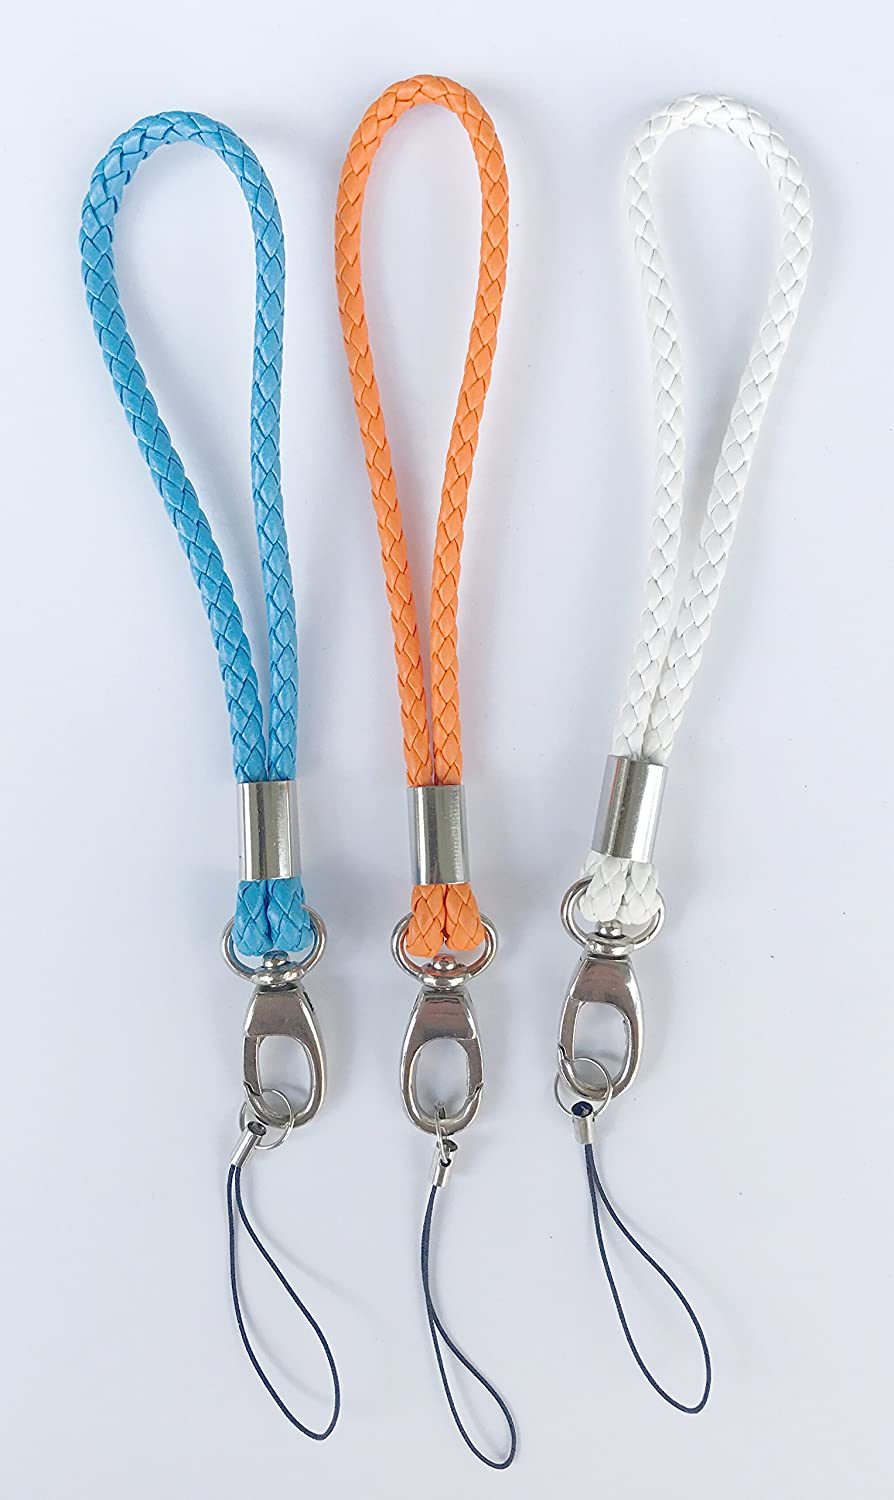 Fashion PU Braided Hand Wrist Strap[3Pack] Leather Wrist Lanyard with J-Hook for Camera & Cell Phone & Purse& Keychain-Straps Around Your Wrist-Assorted Different Color (Blue/Orange/White)